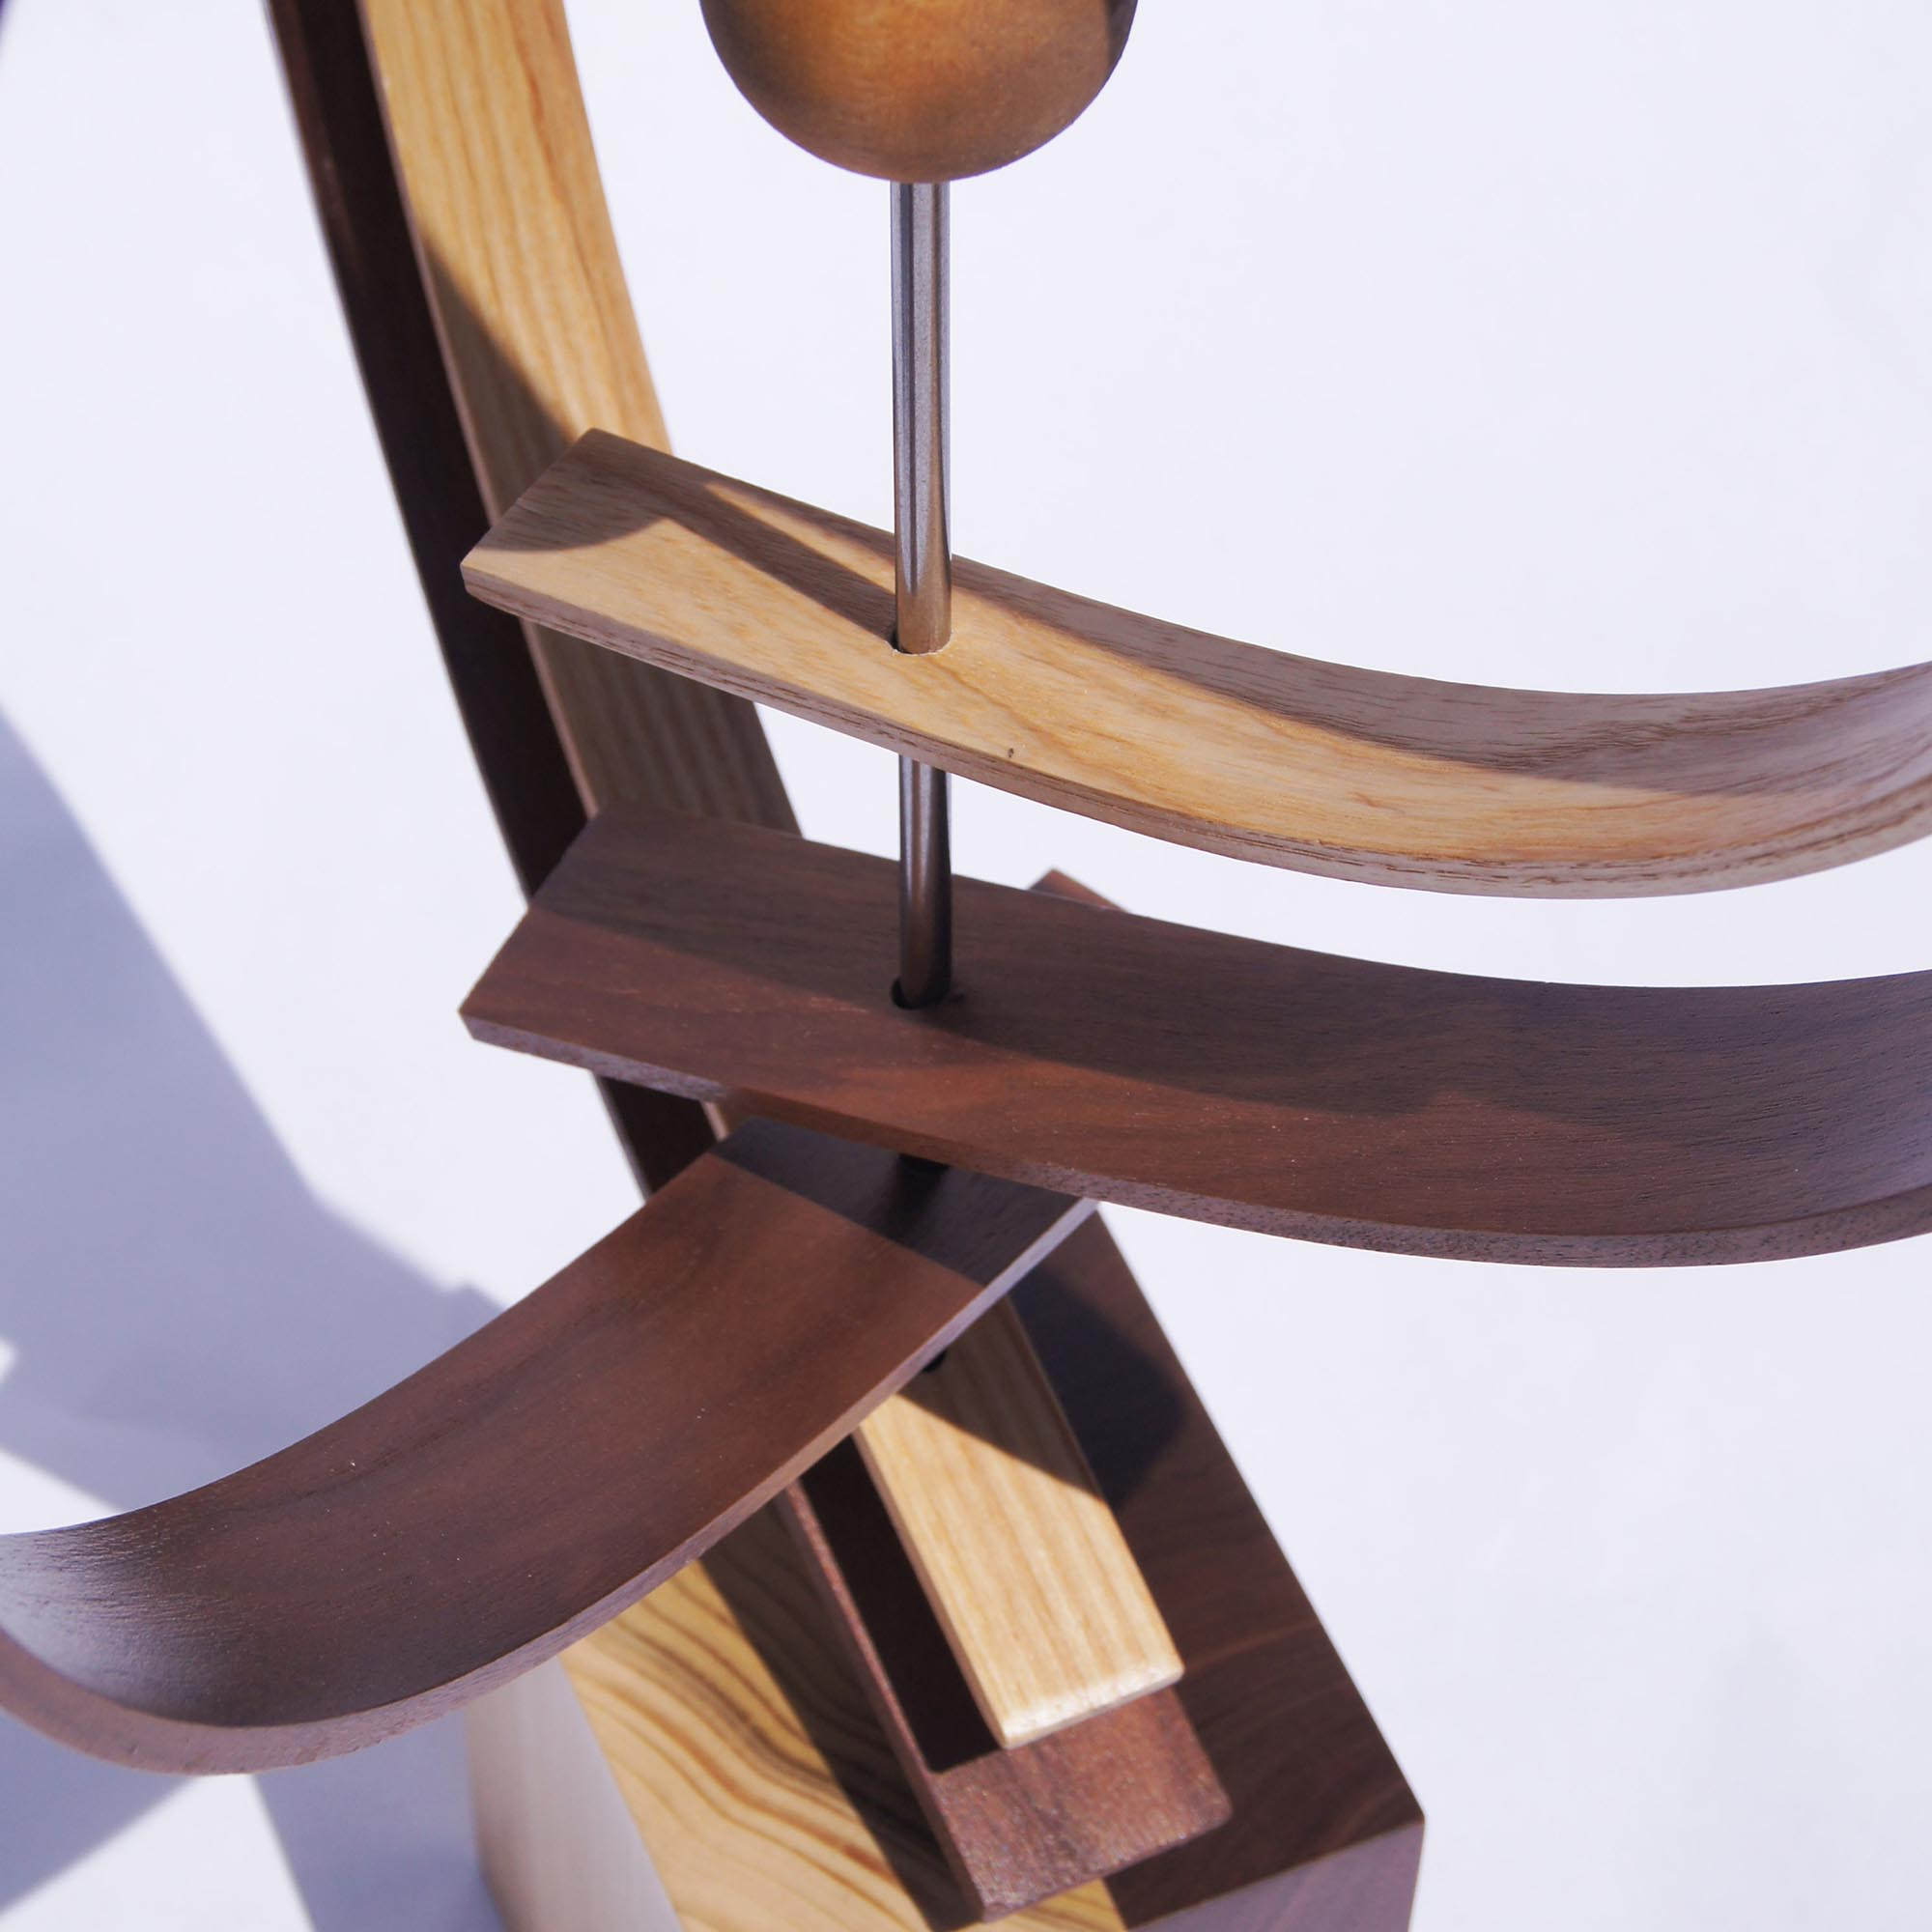 In Orbit by Jeff Linenkugel - Modern Wood Sculpture on Natural Wood - Image 3